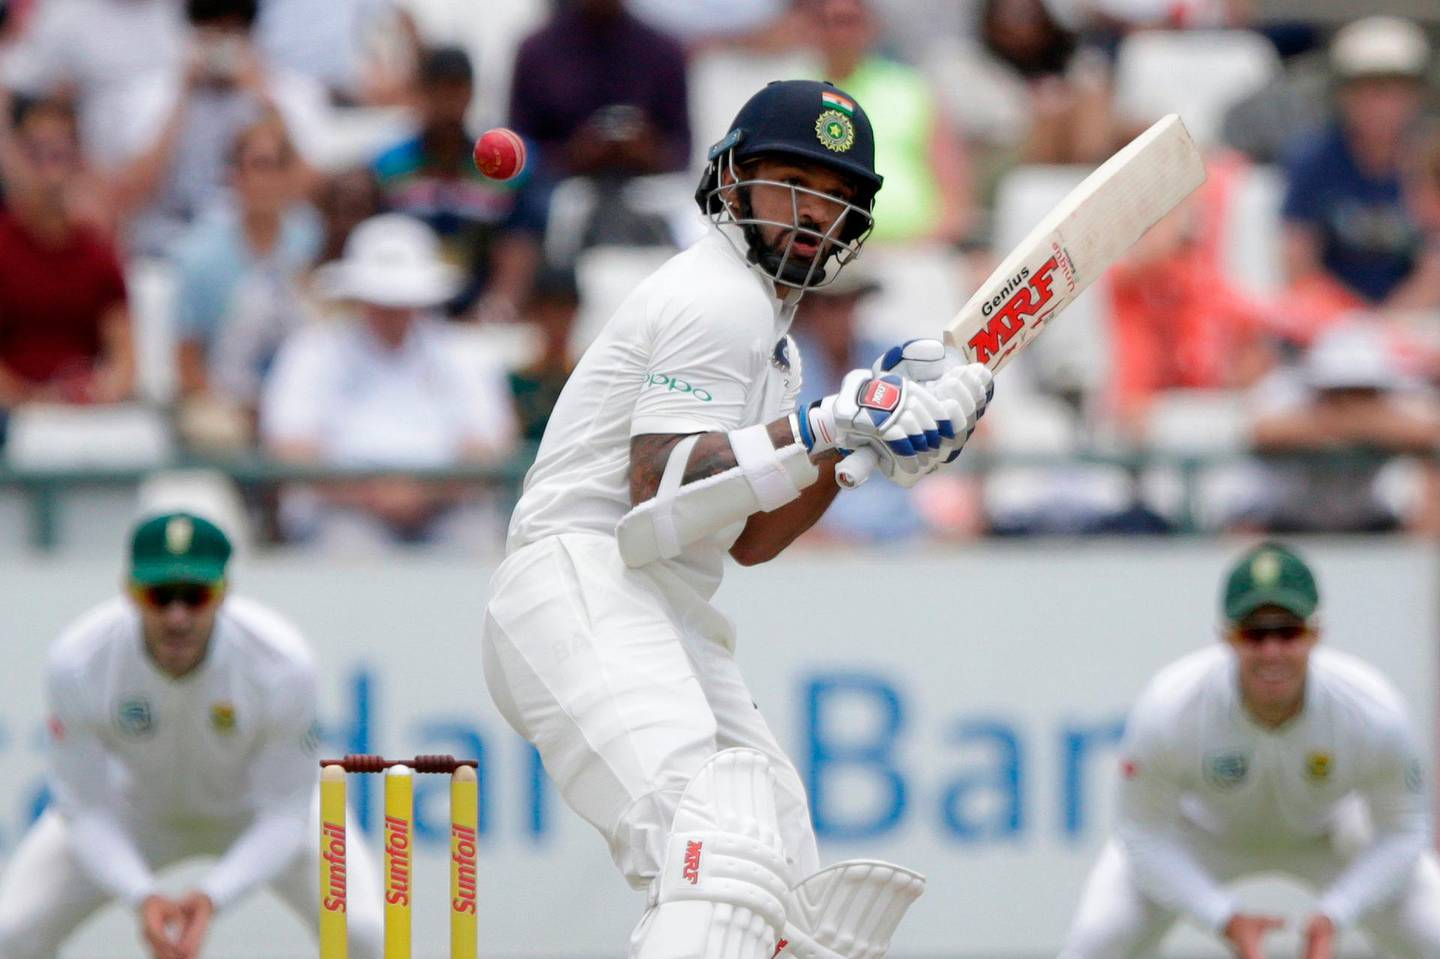 Indian batsman Shikhar Dhawan avoids a bouncer during the fourth day of the first Test cricket match between South Africa and India at Newlands cricket ground on January 8, 2018 in Cape Town, South Africa.   / AFP PHOTO / GIANLUIGI GUERCIA